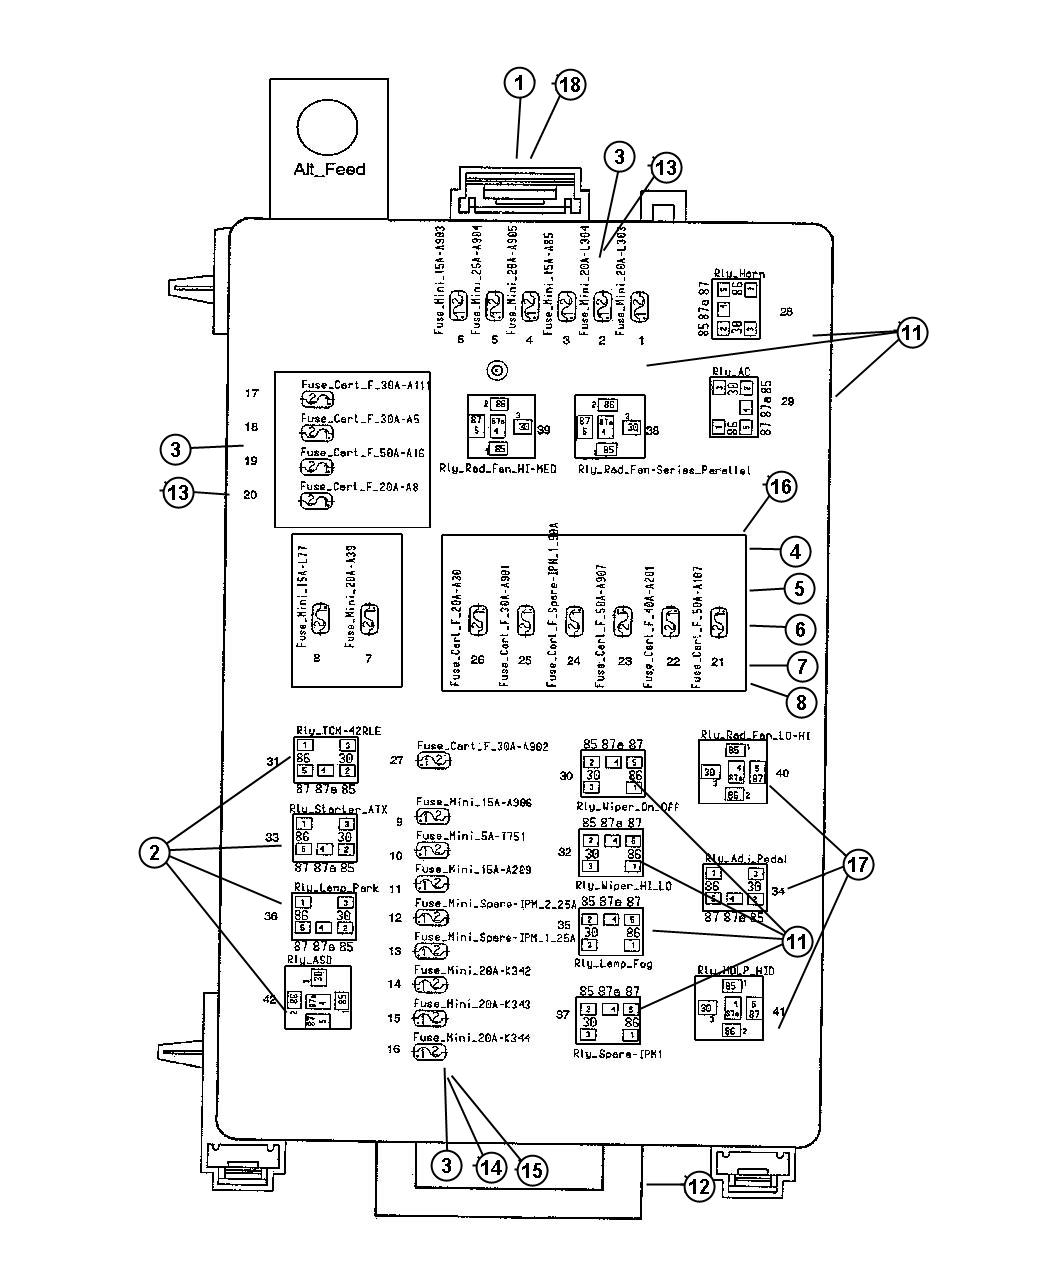 wiring diagram starter on 2006 chrysler 300 wiring diy wiring 2006 chrysler wiring diagrams nilza net